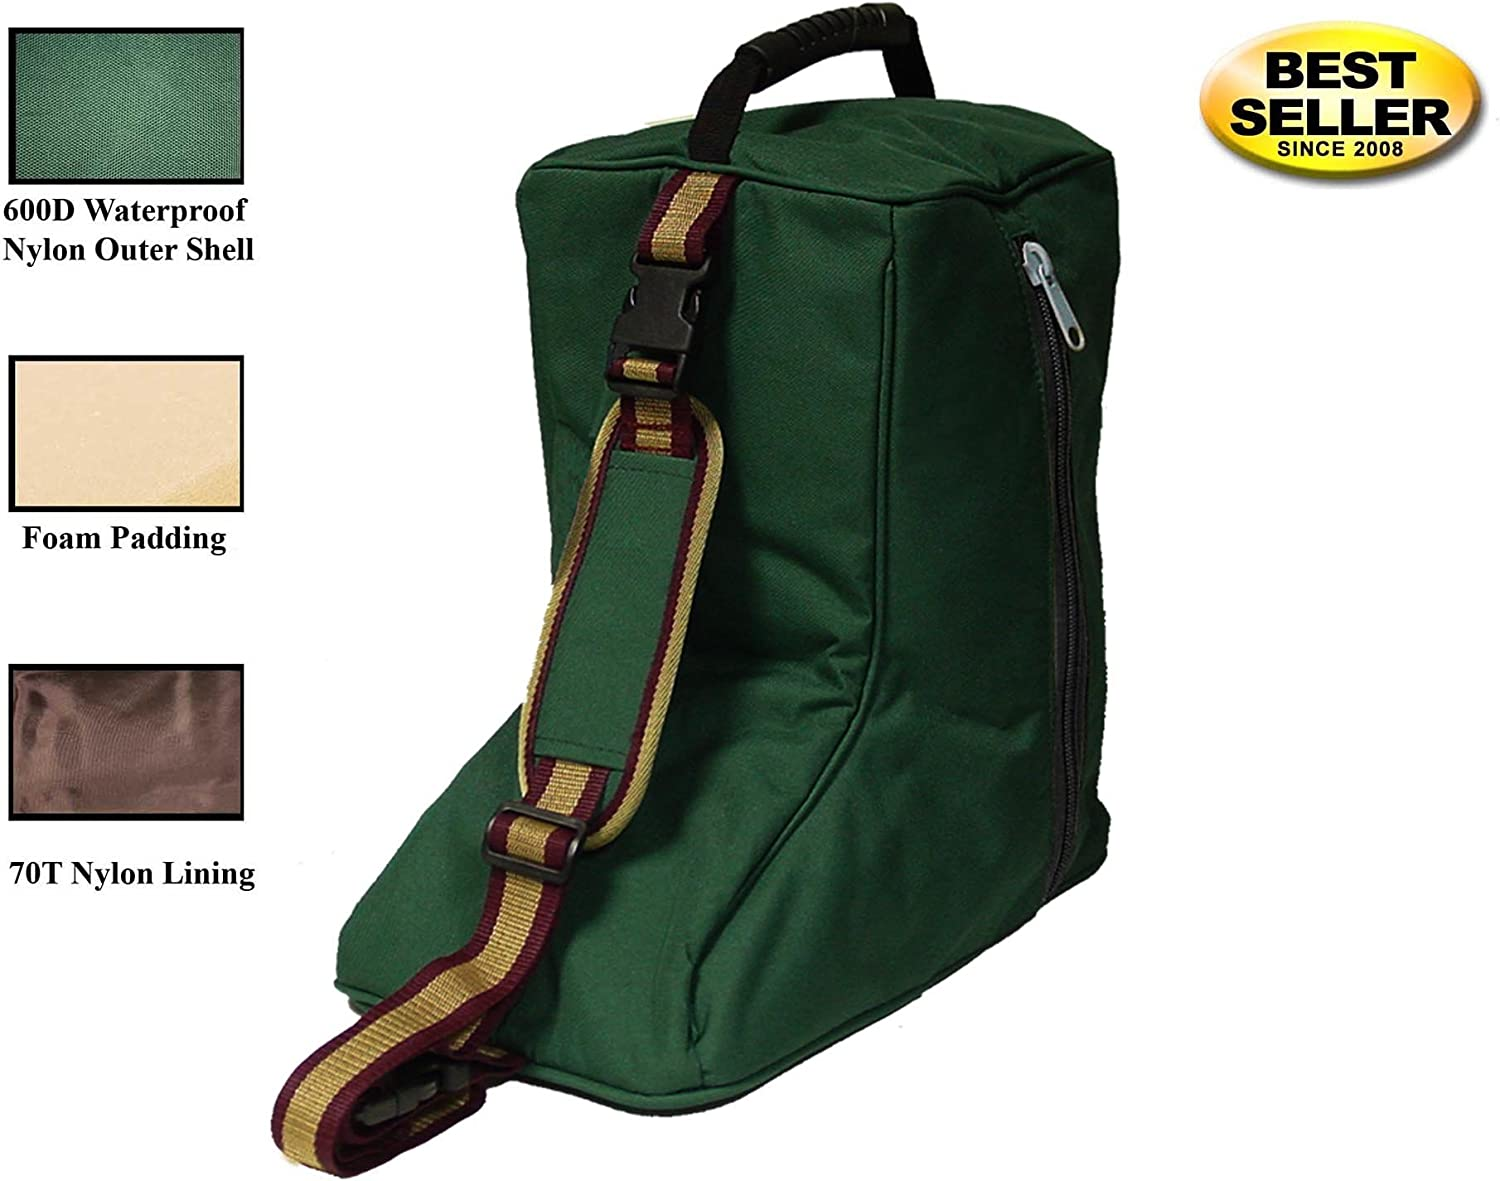 Tahoe Western Waterproof Carry Saddle Bridle and Garment Bag Set with One Year Warranty Boot